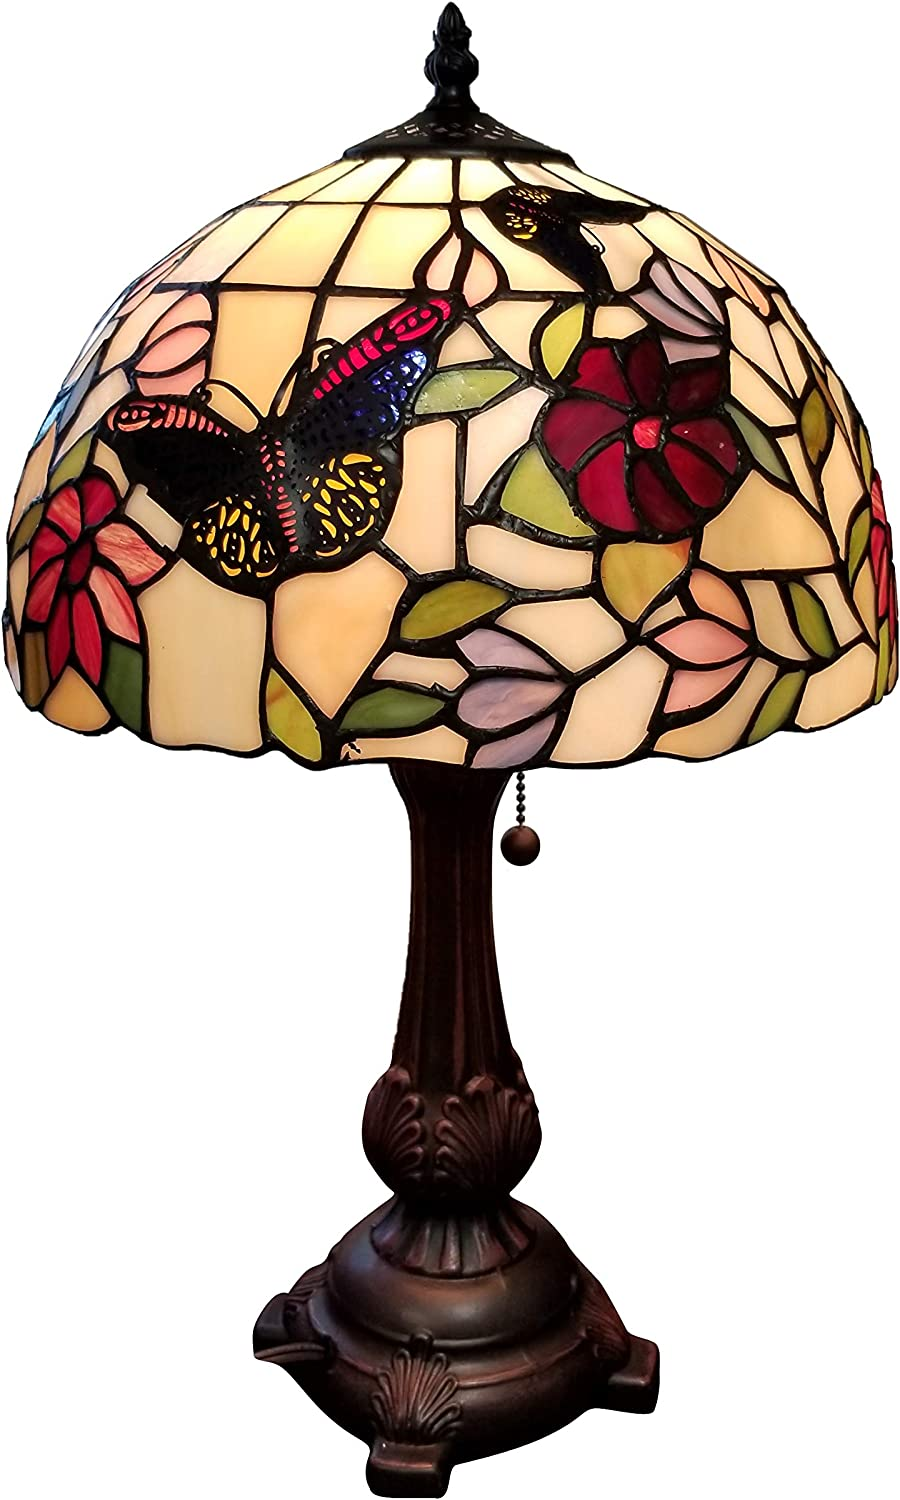 "Tiffany Style Table Lamp Banker 19"" Tall Stained Glass Red Green White Floral Flower Butterfly Antique Vintage Light Decor Bedside Living Room Bedroom Handmade Gift AM061TL12B Amora Lighting"